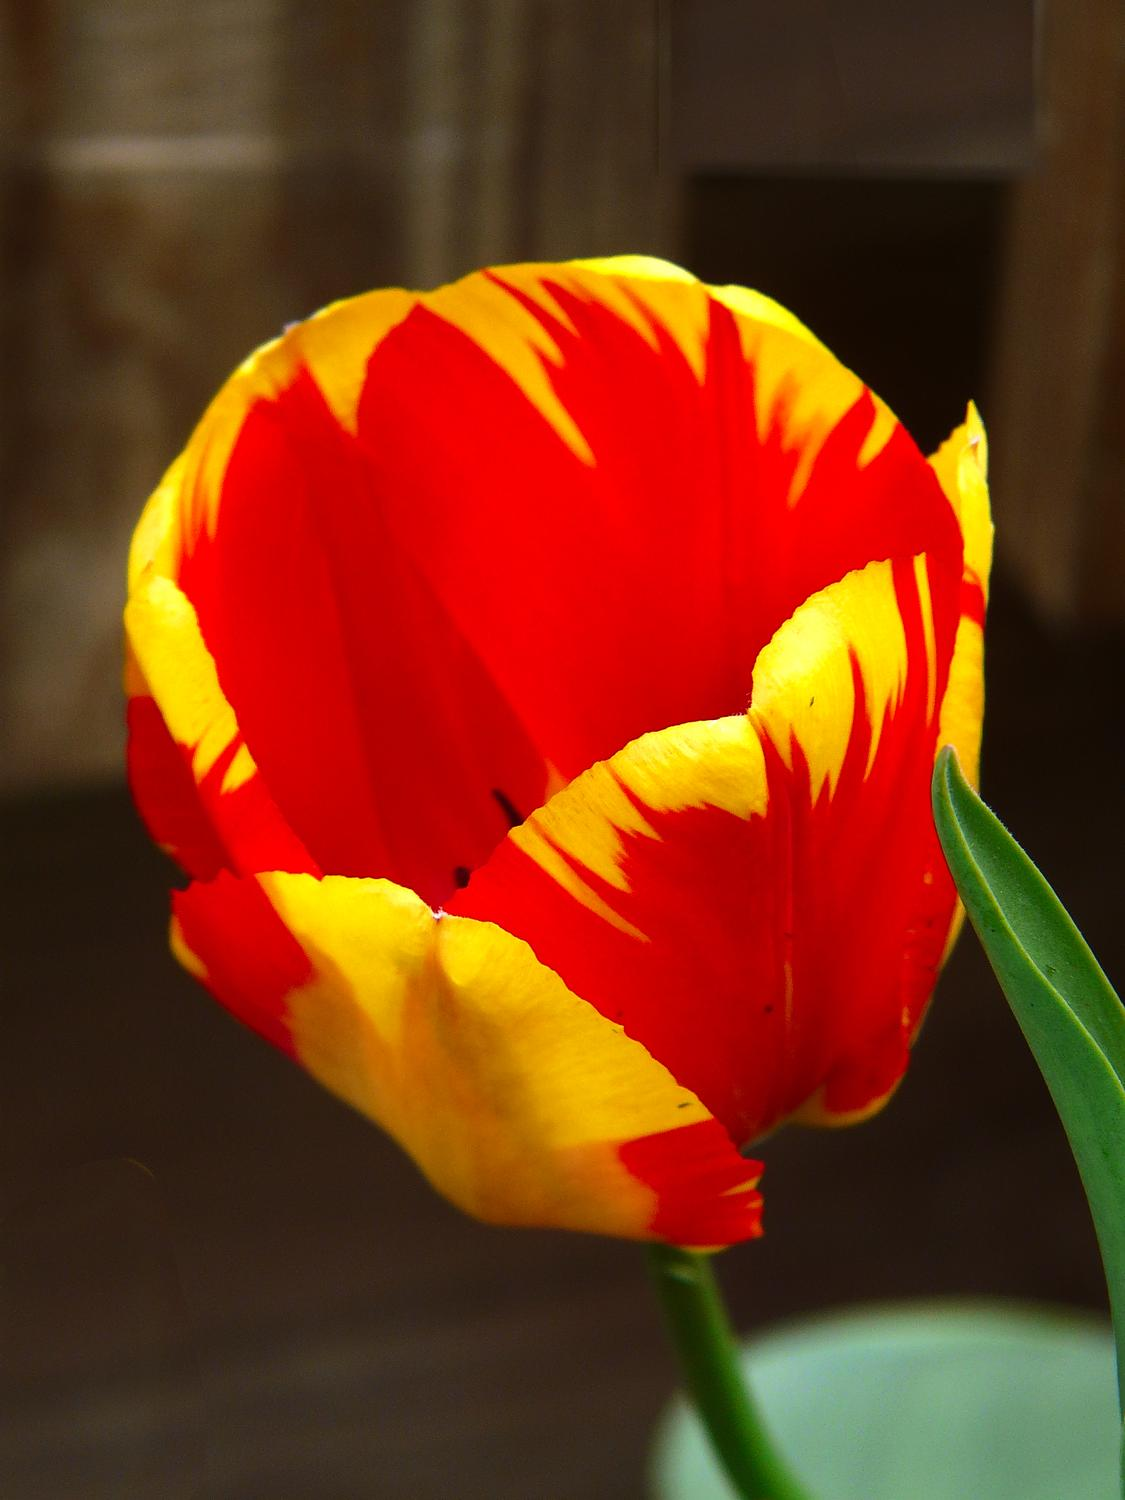 Tulip grown by The Artist's Muse - #8 - Tulip #8 - - art  - photography - by Tony Karp